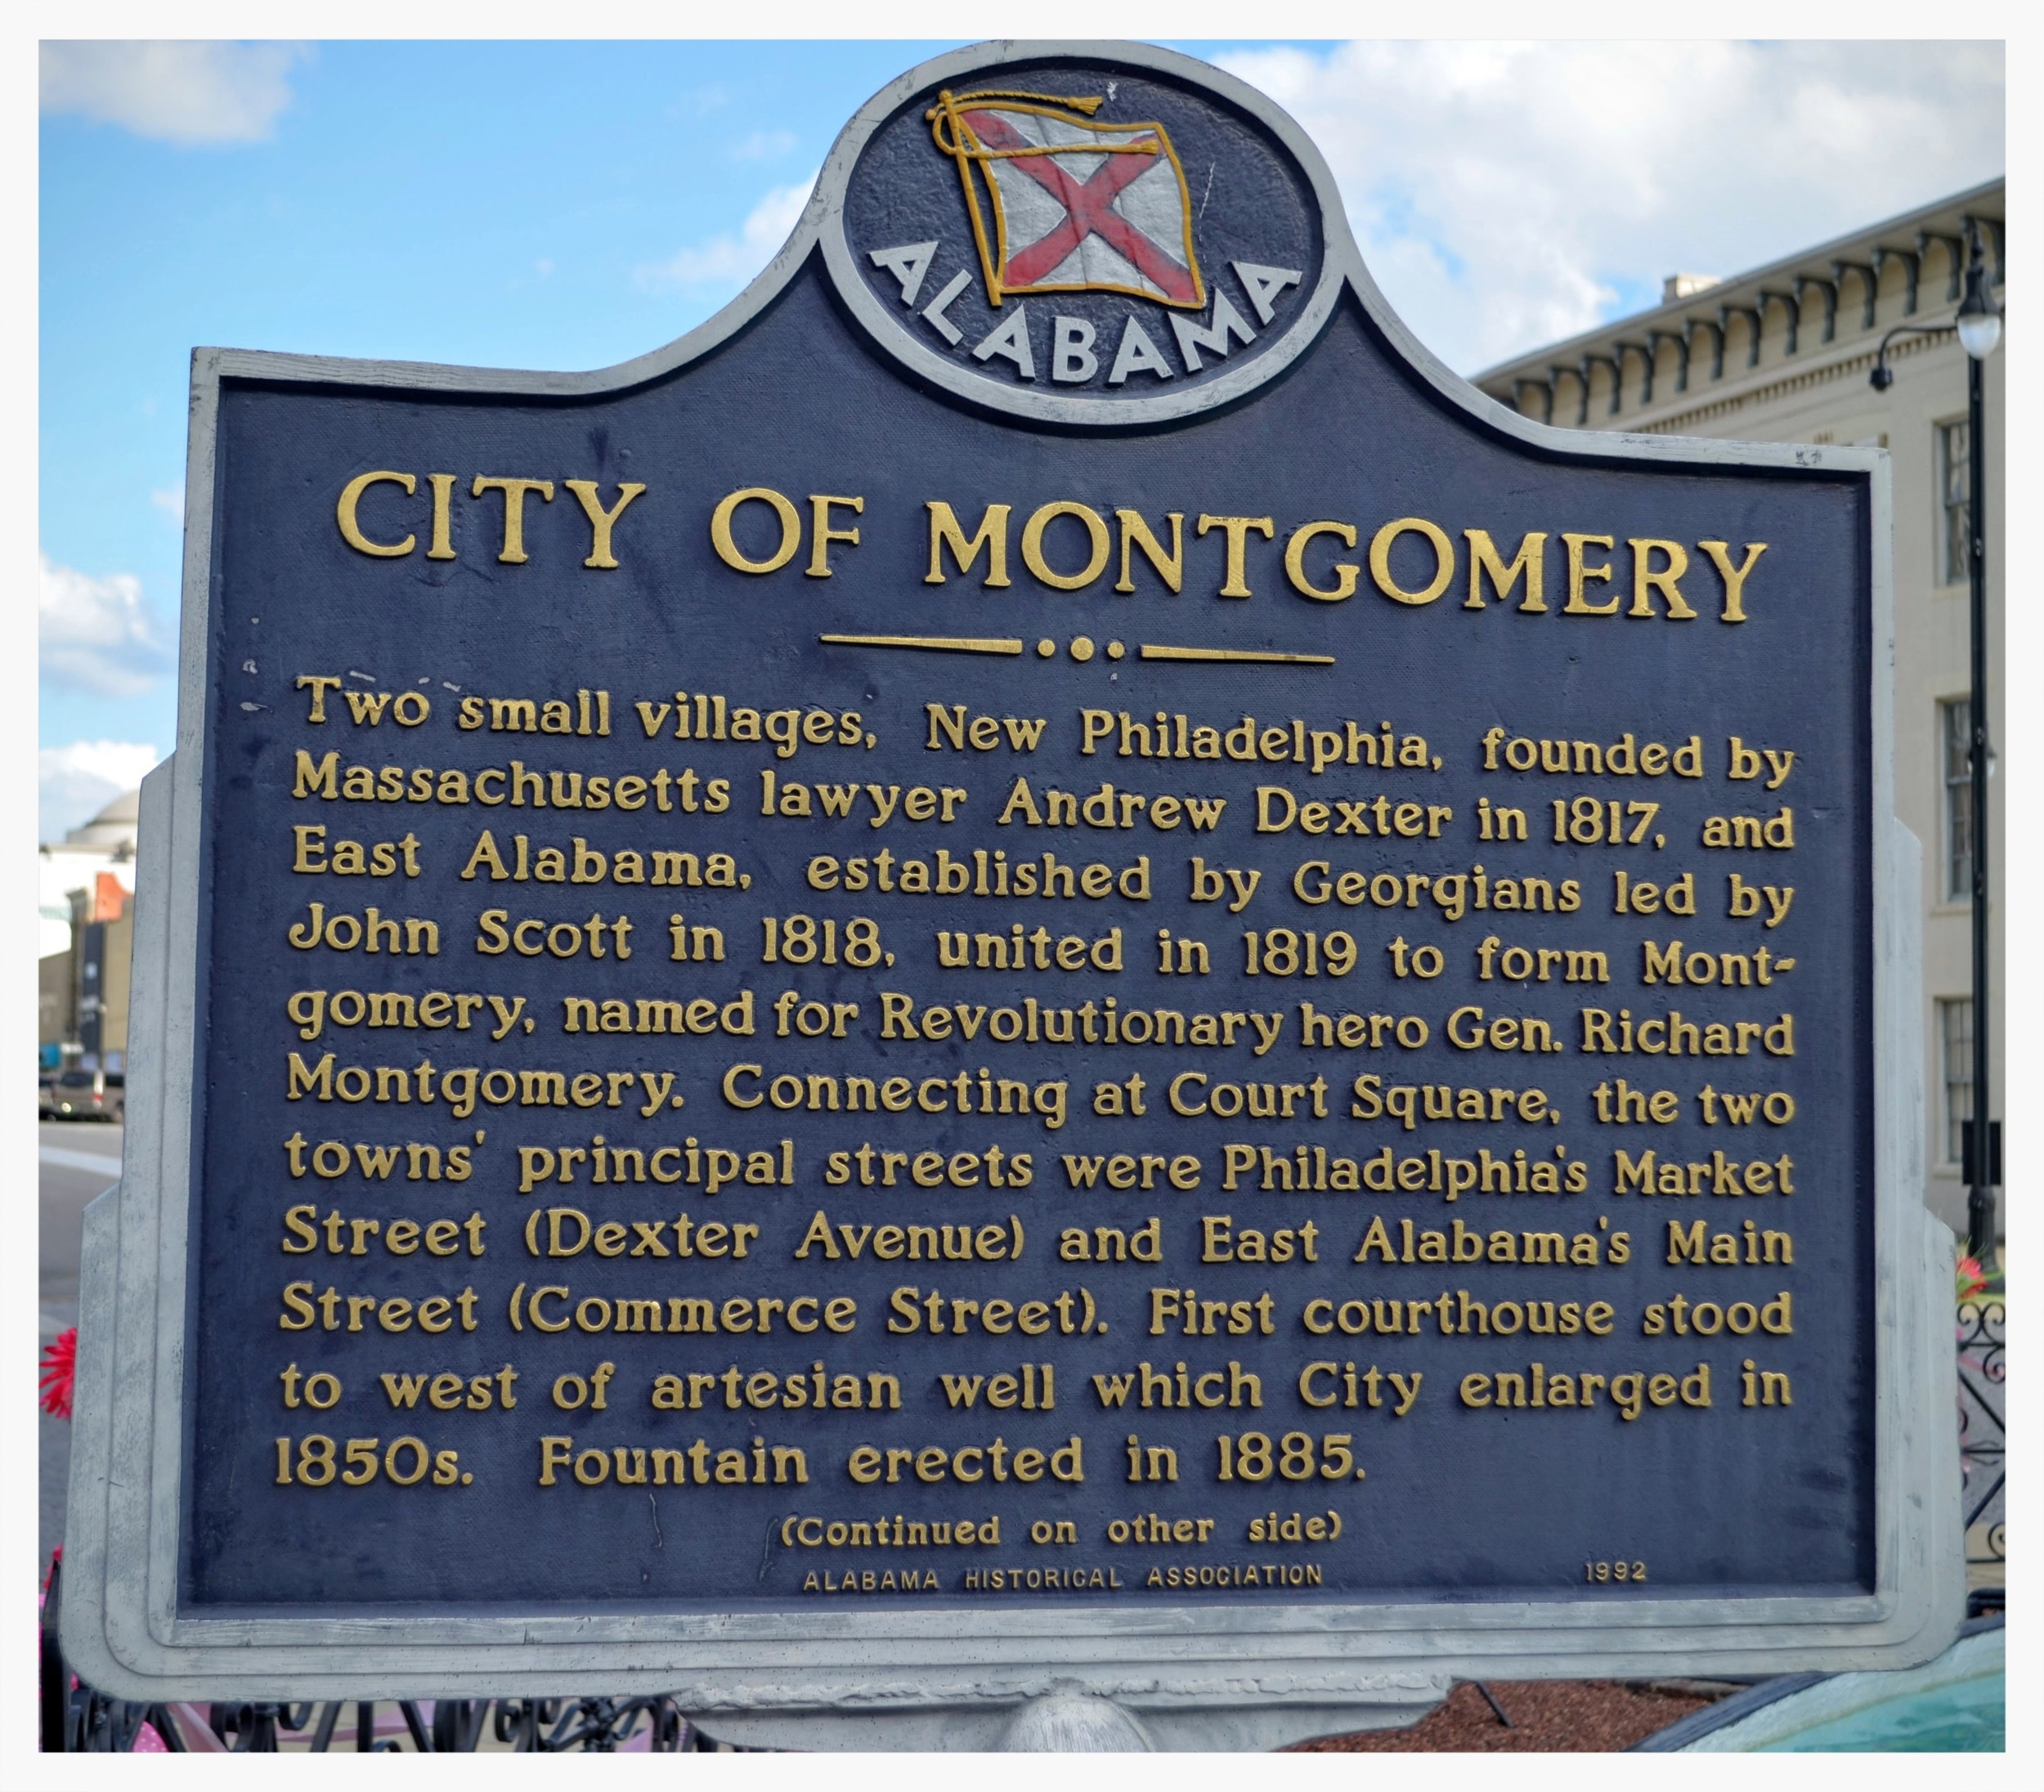 City of Montgomery historical marker, Montgomery, Montgomery County, Alabama